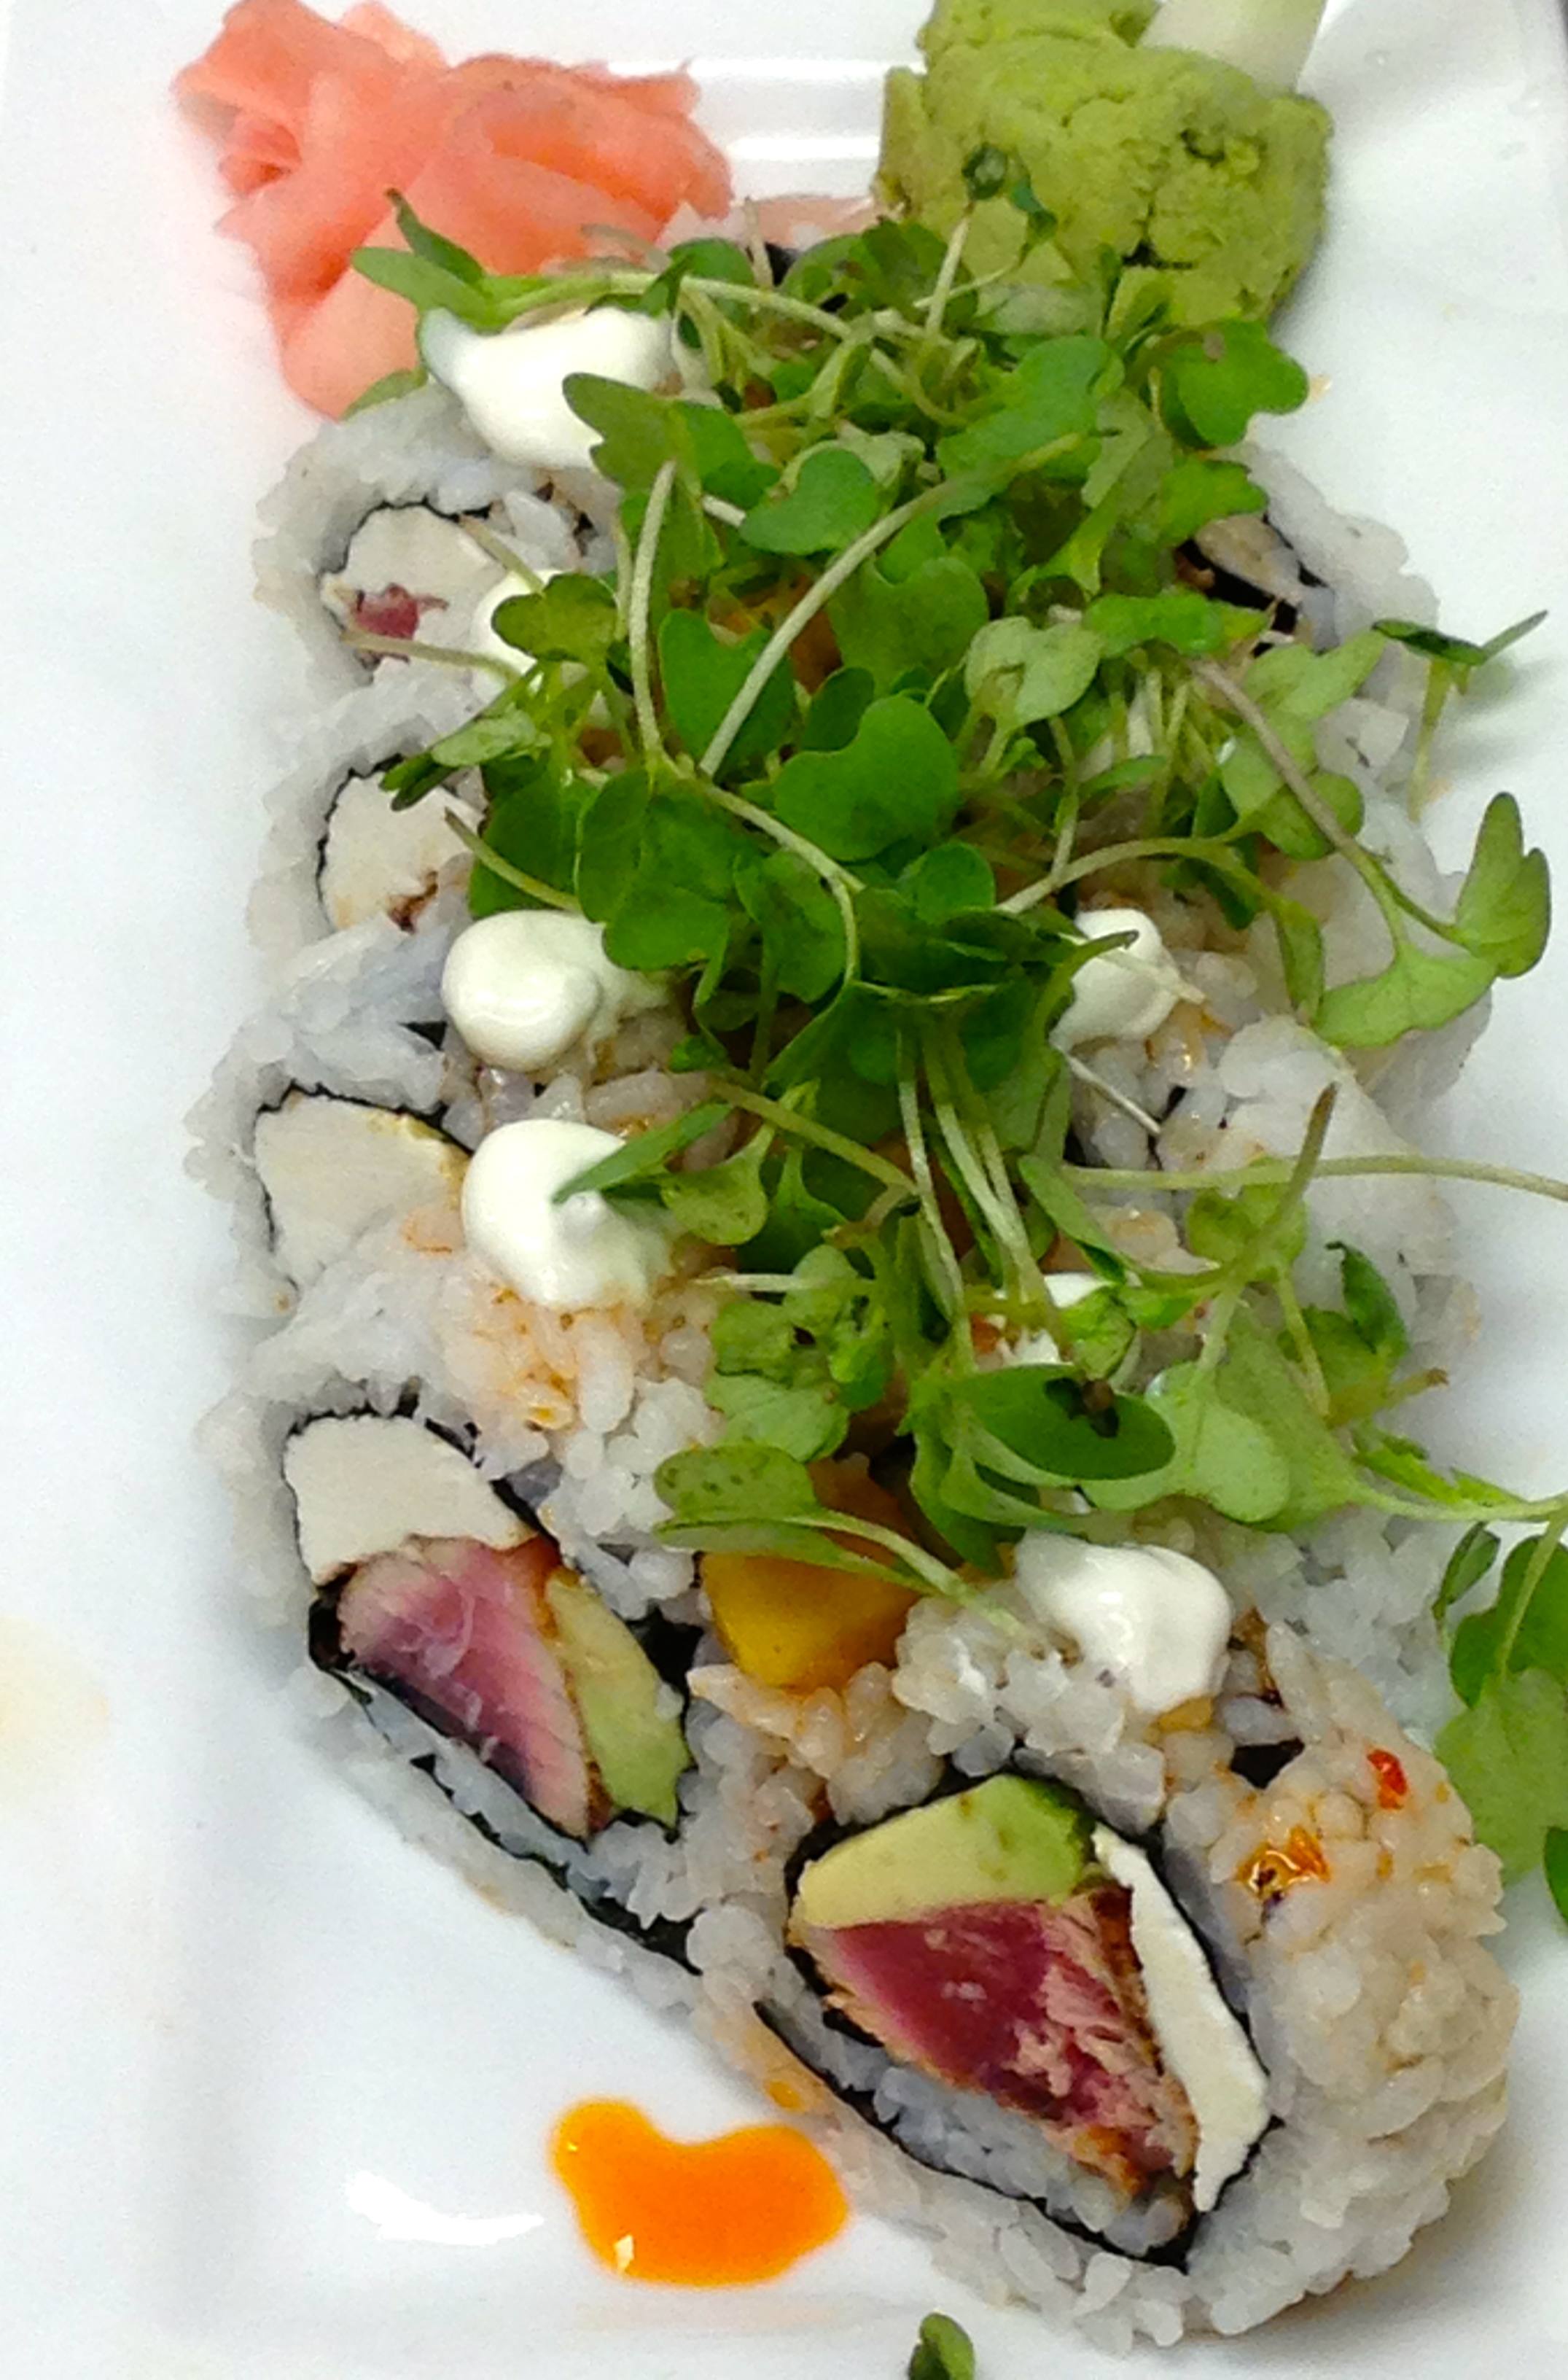 Blackened Tuna Roll with hot sesame oil, lime creme fraiche, mango salsa, and wasabi greens